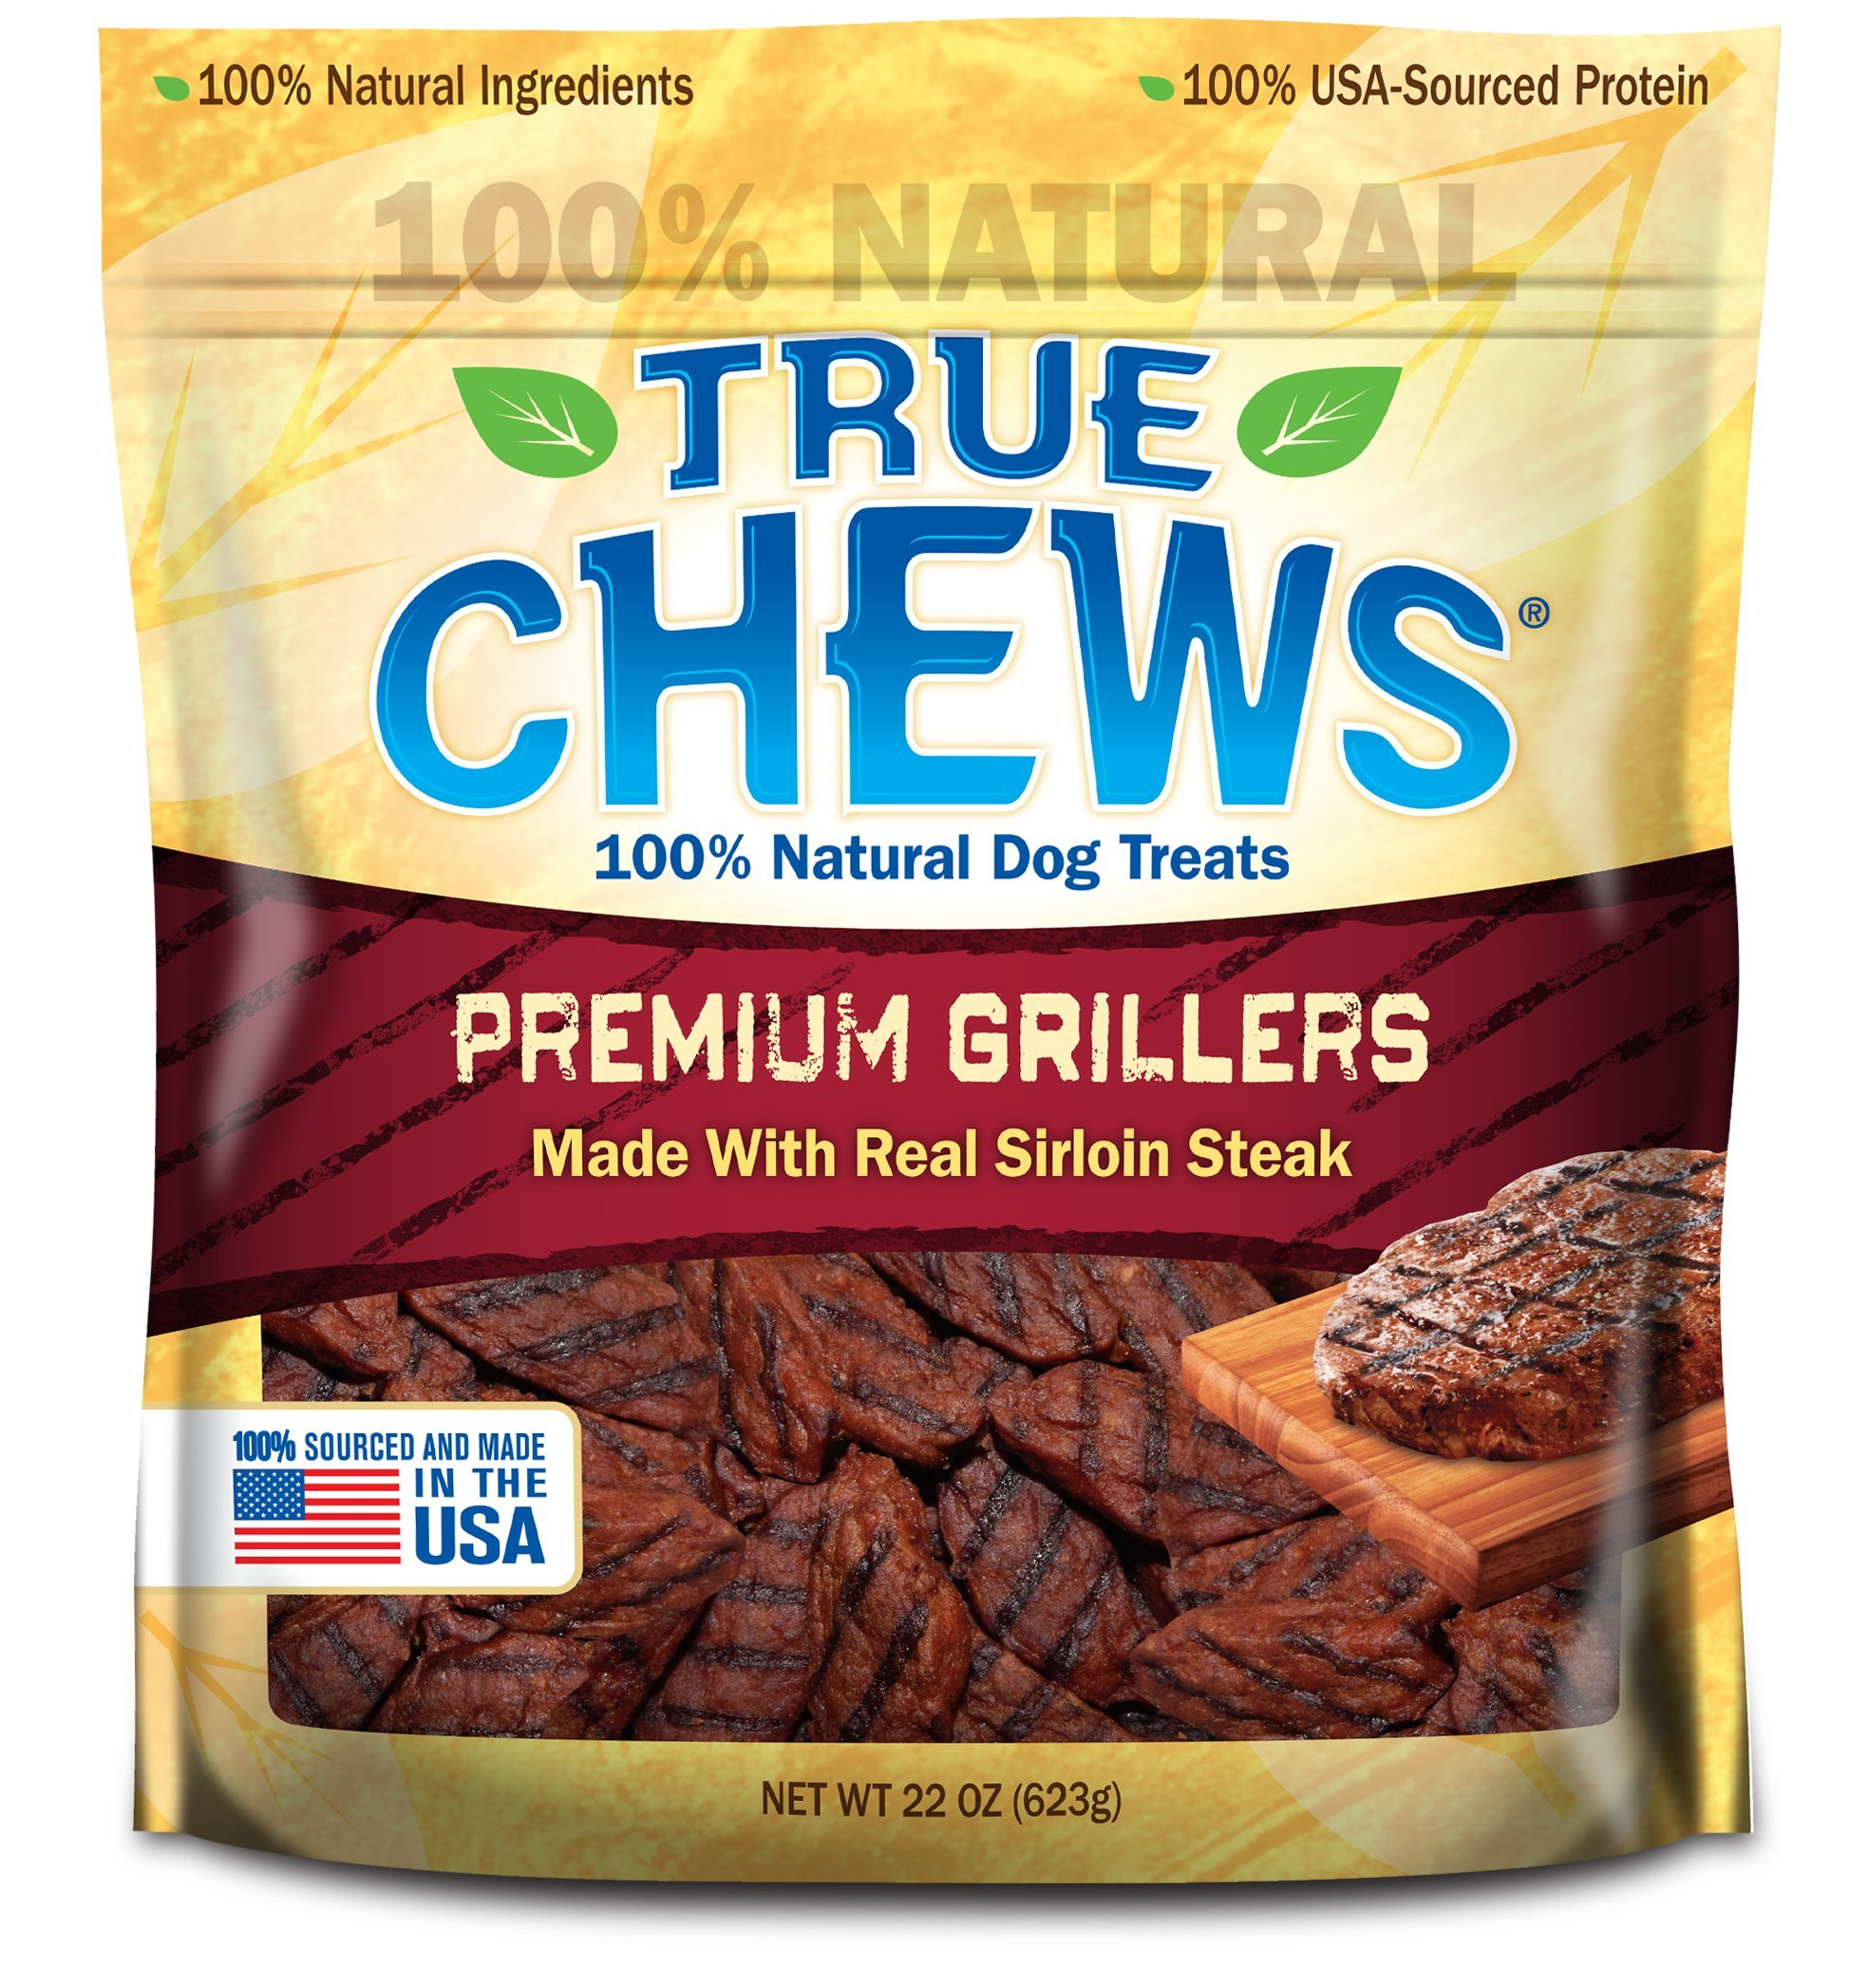 True Chews Premium Grillers Made with Real Sirloin Steak, 22 oz